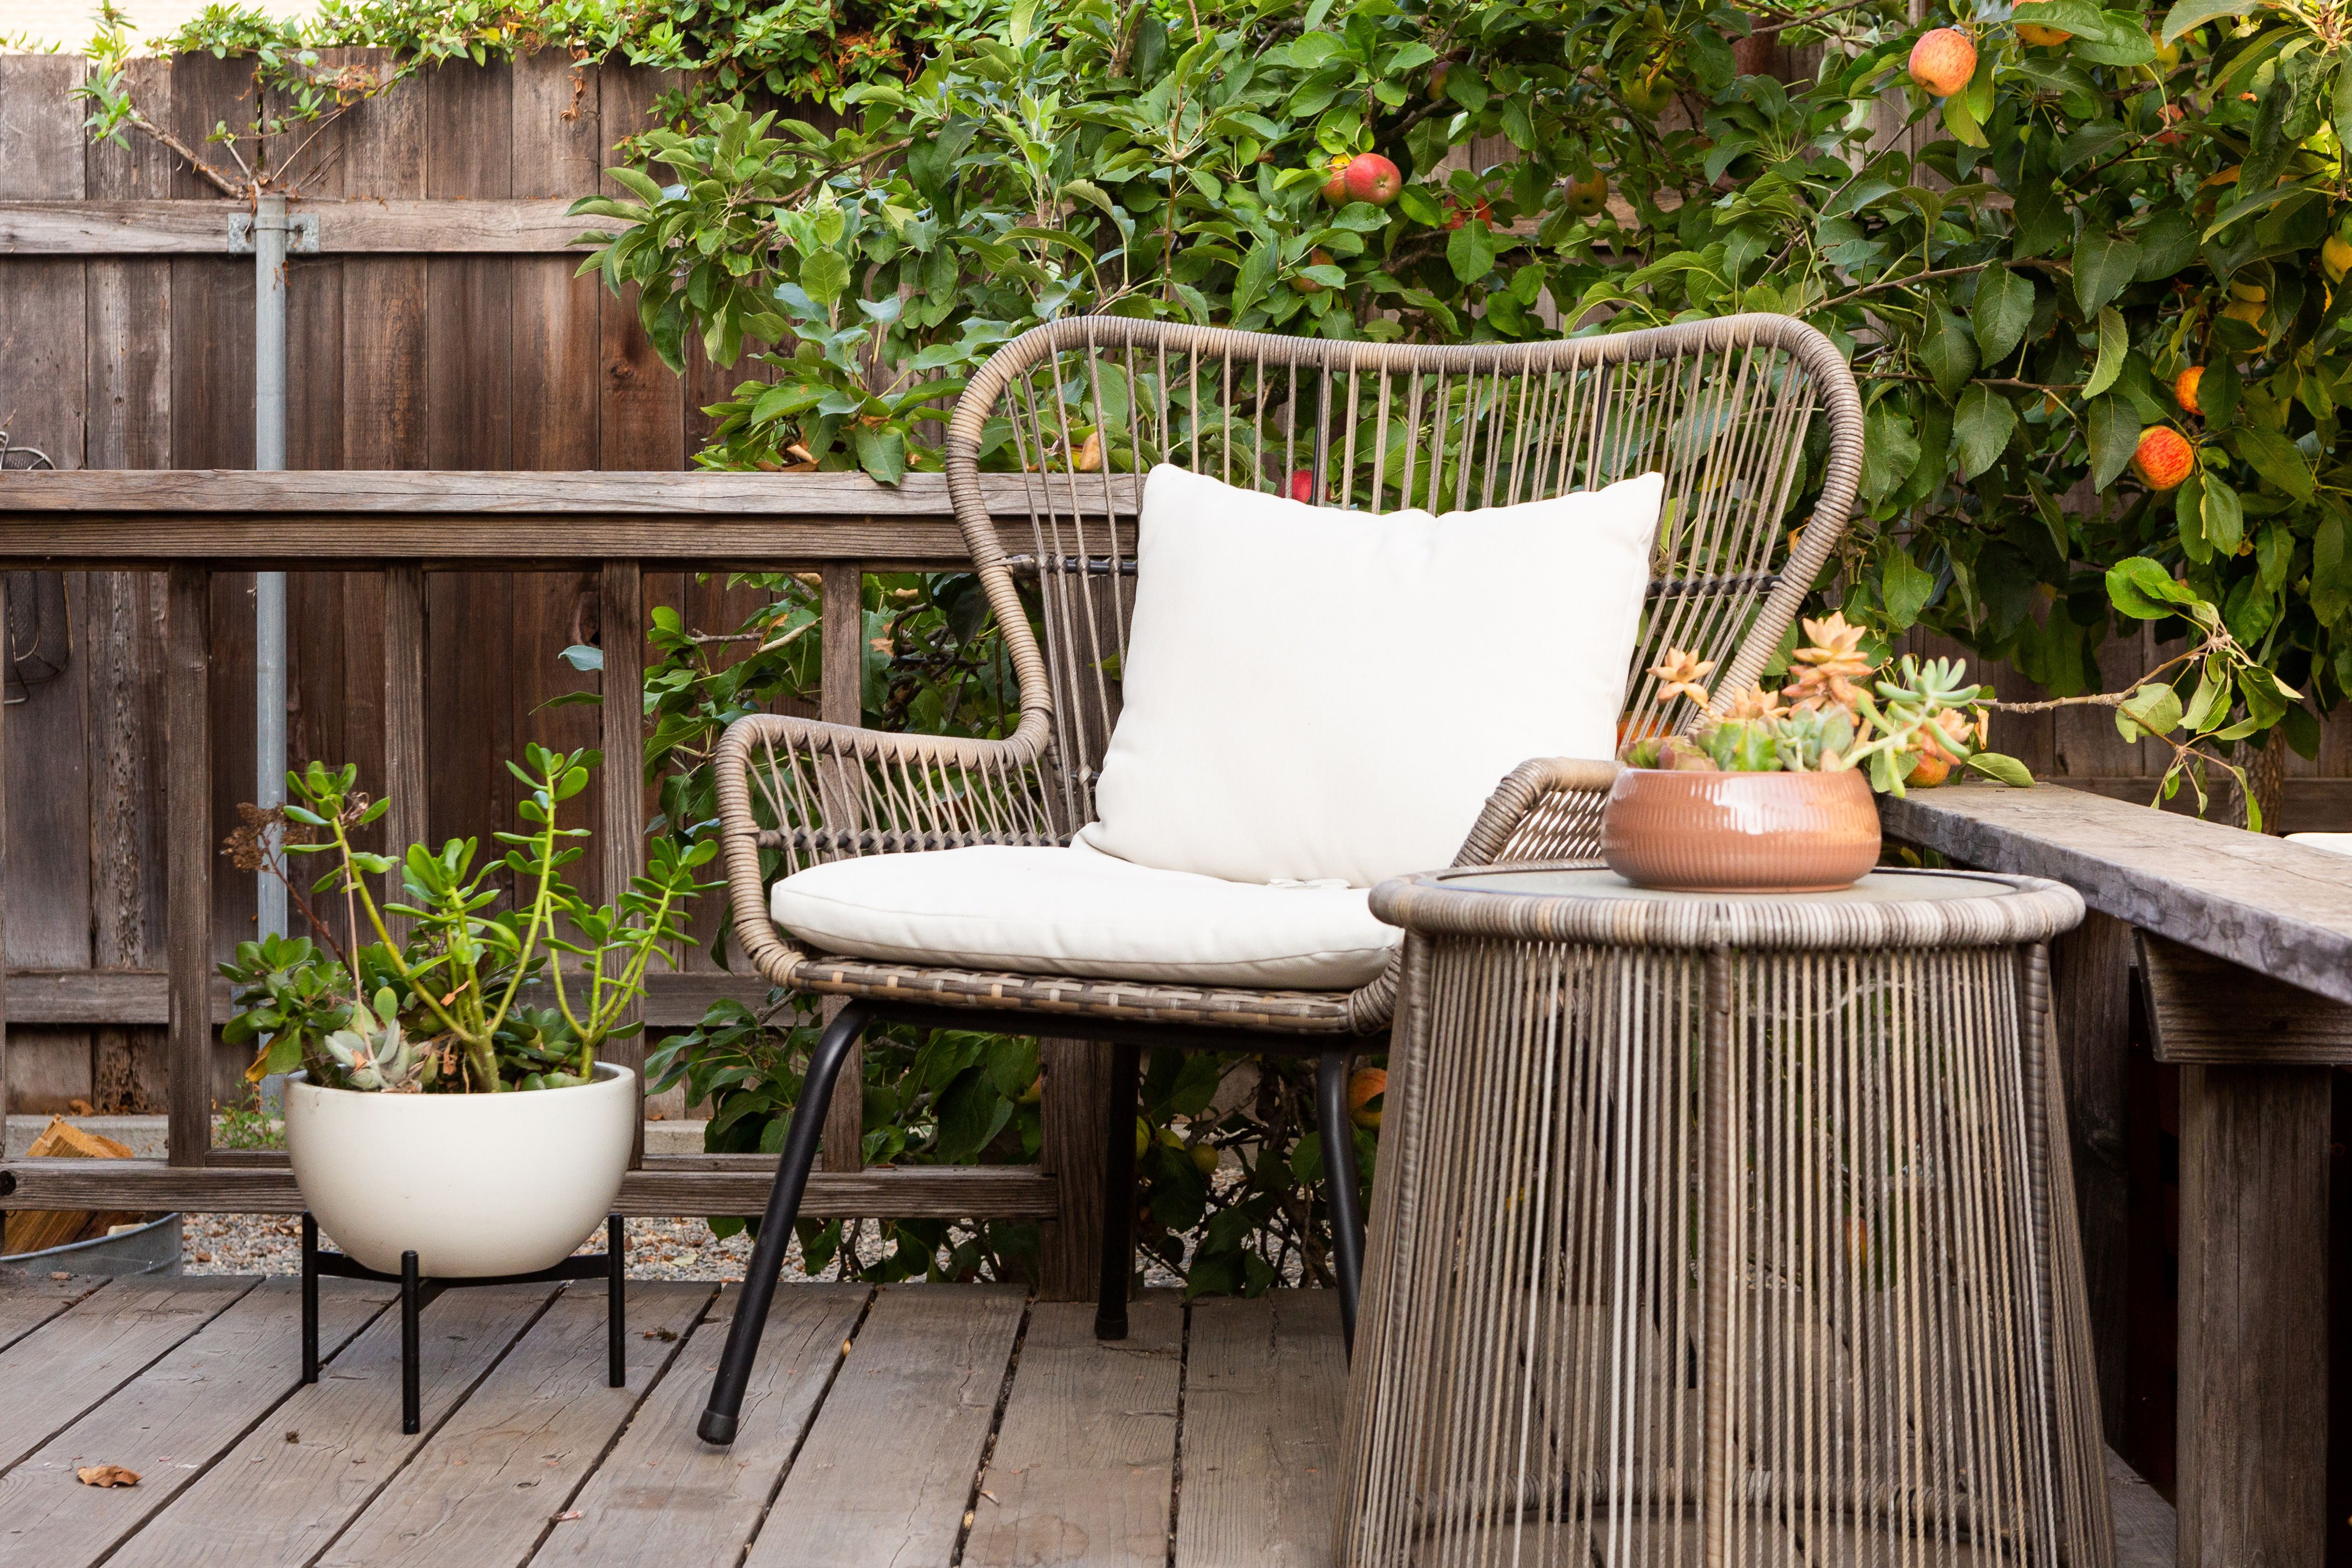 How To Clean Outdoor Cushions And Fabric Furniture